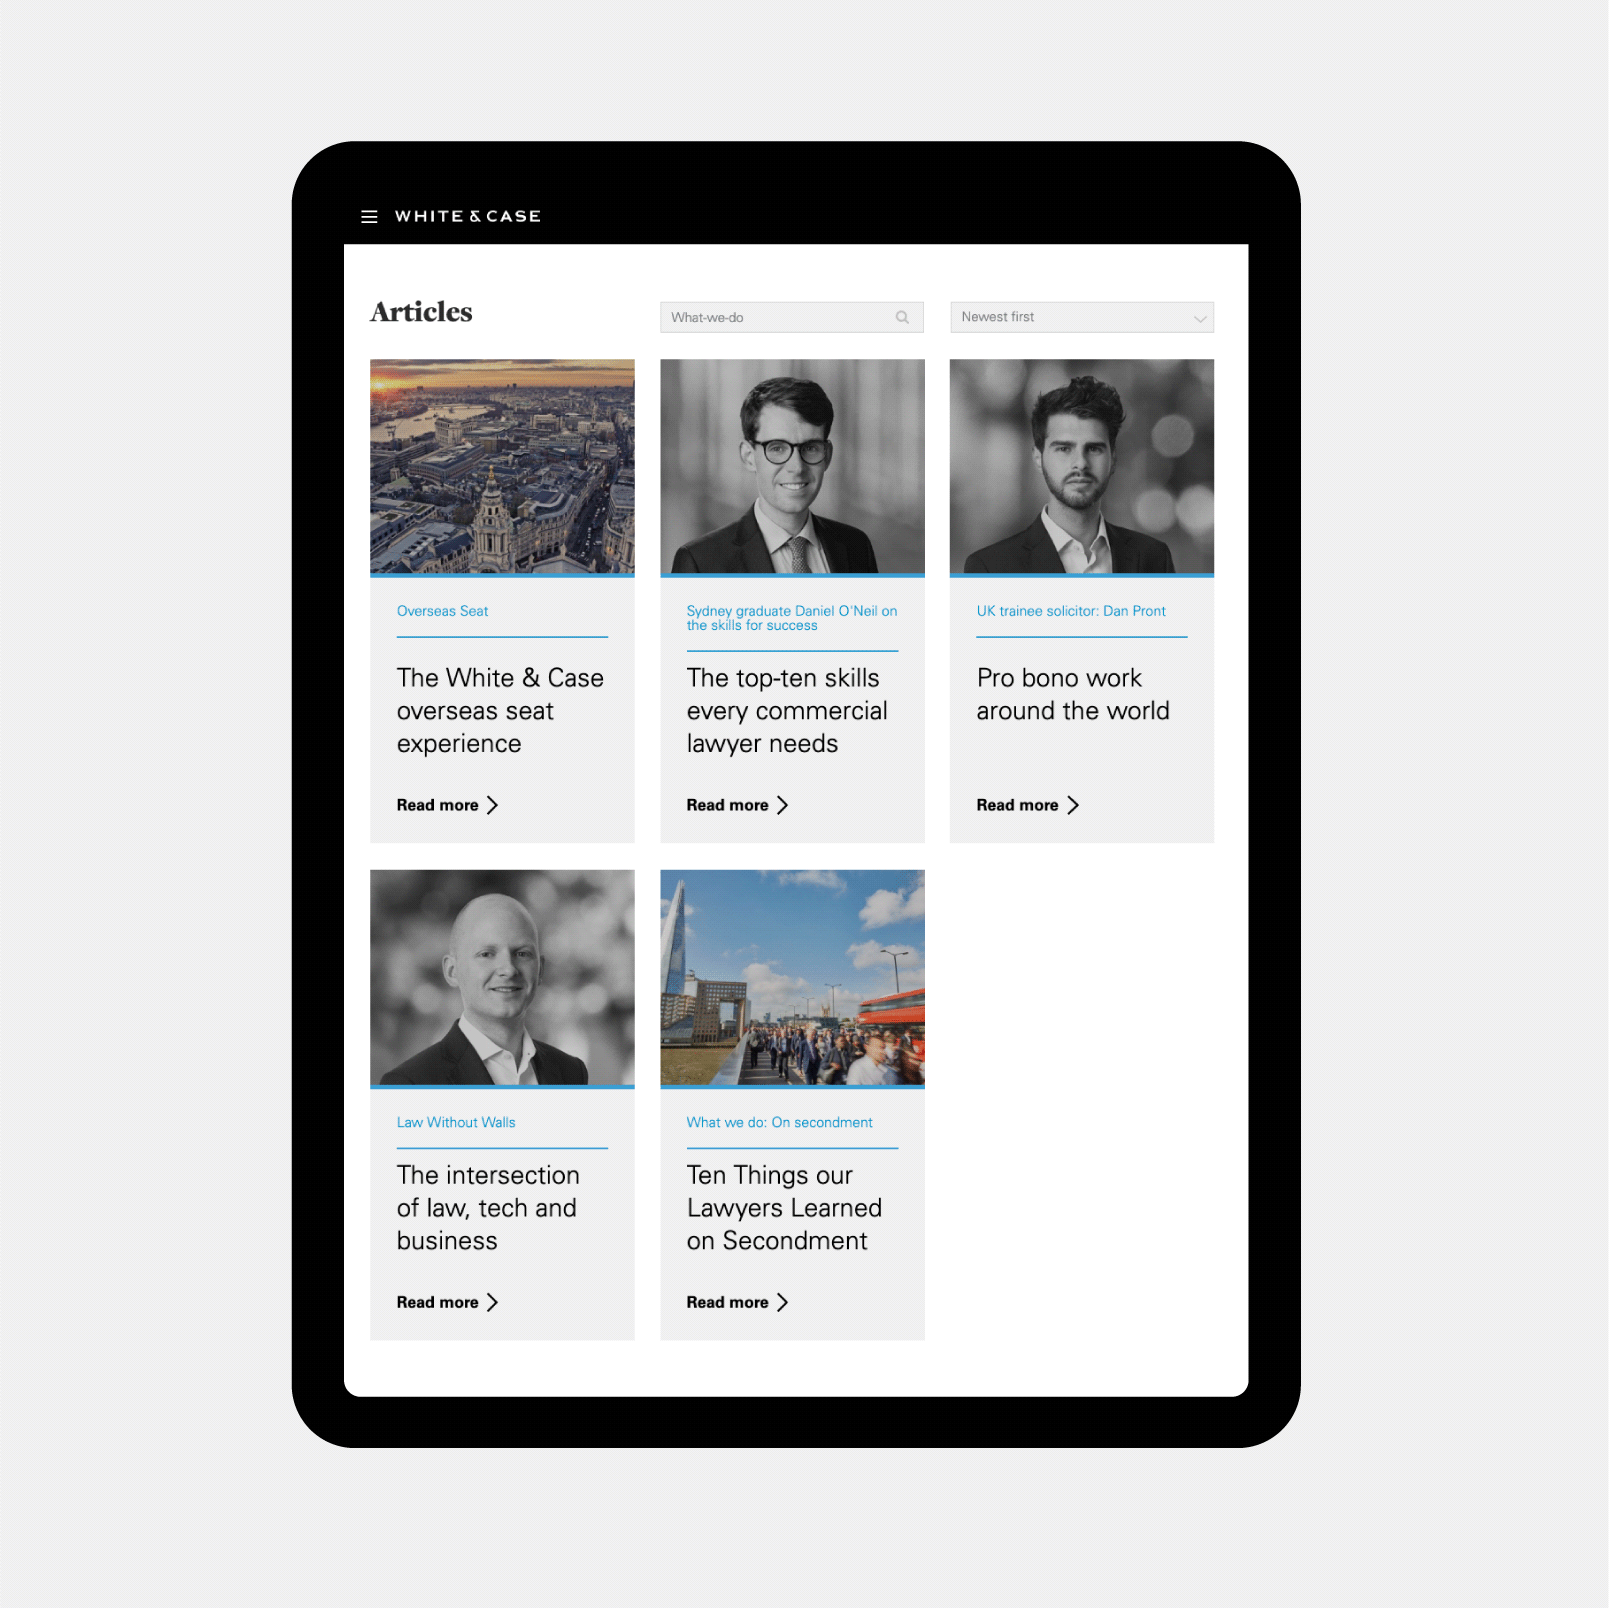 Inside White & Case website design preview on a tablet device